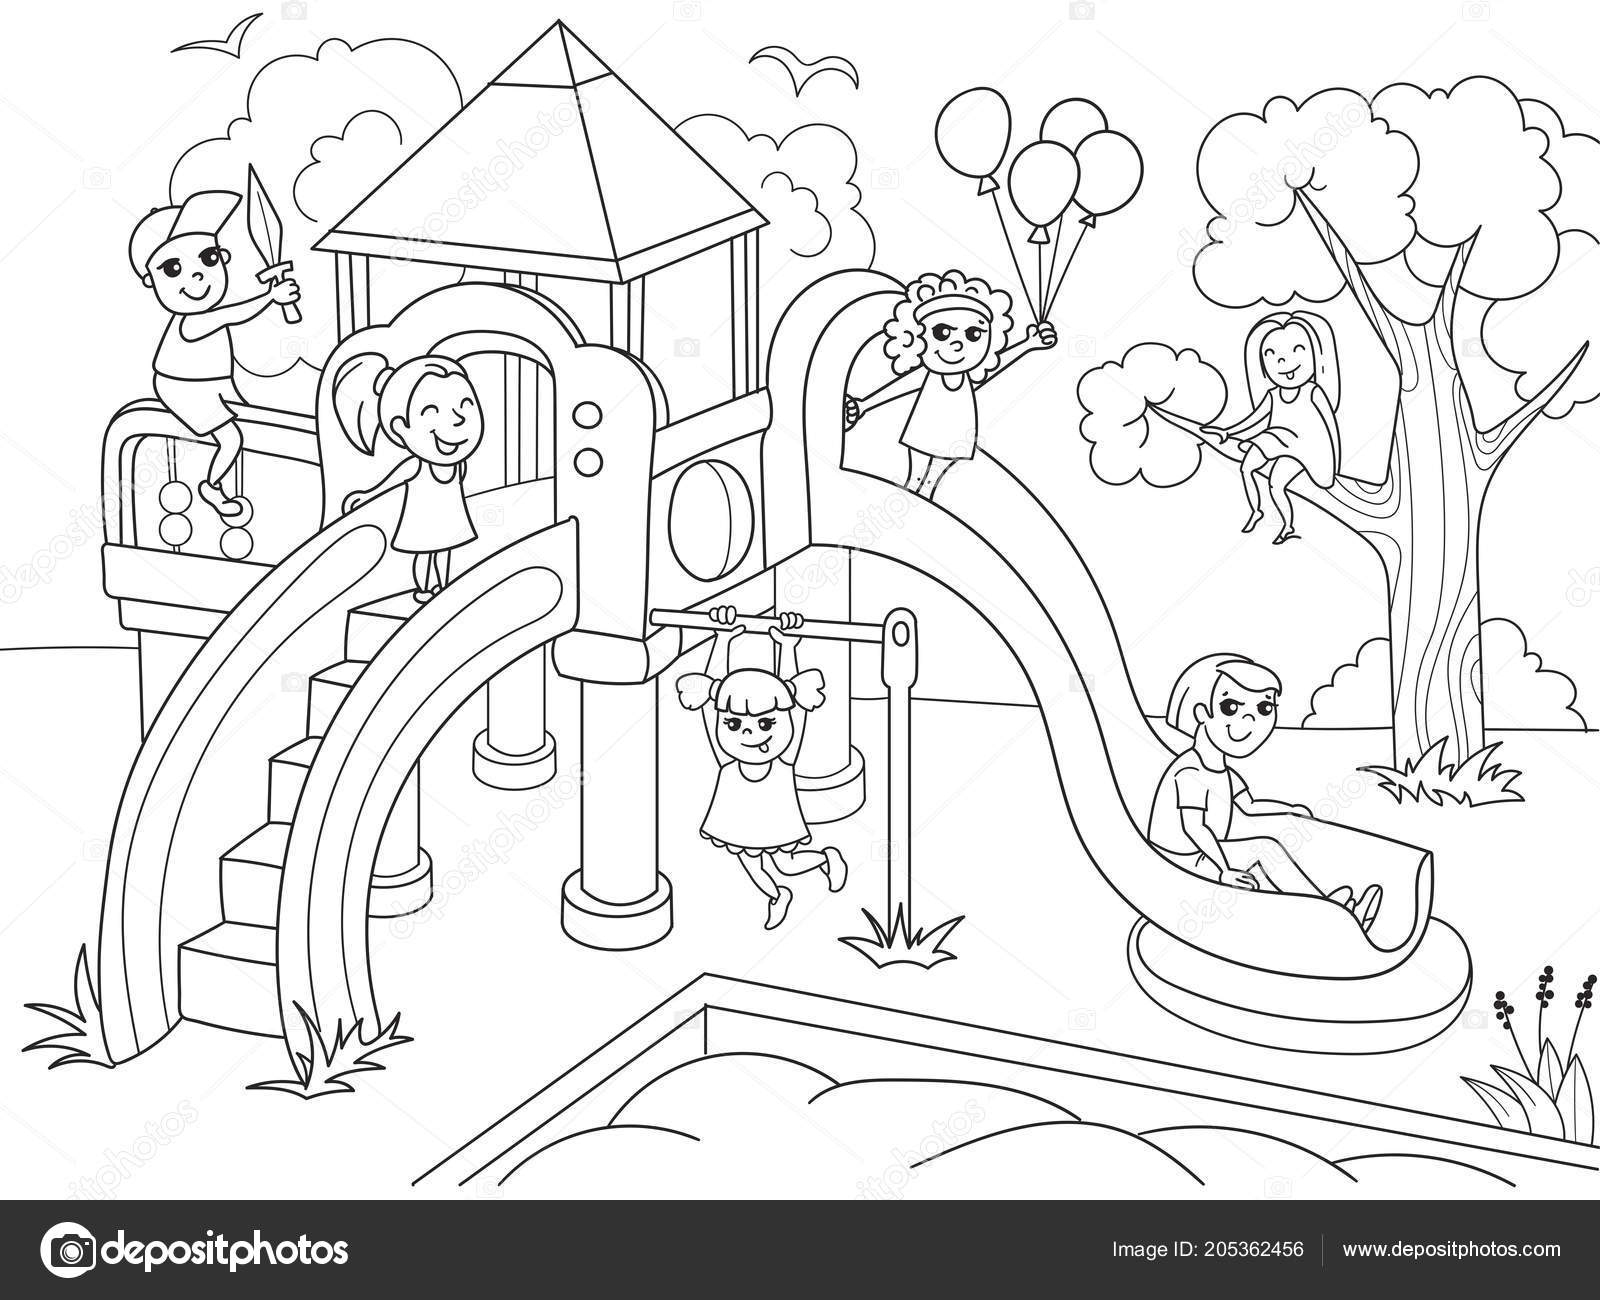 - Playground Coloring Pages Childrens Playground Coloring. Raster